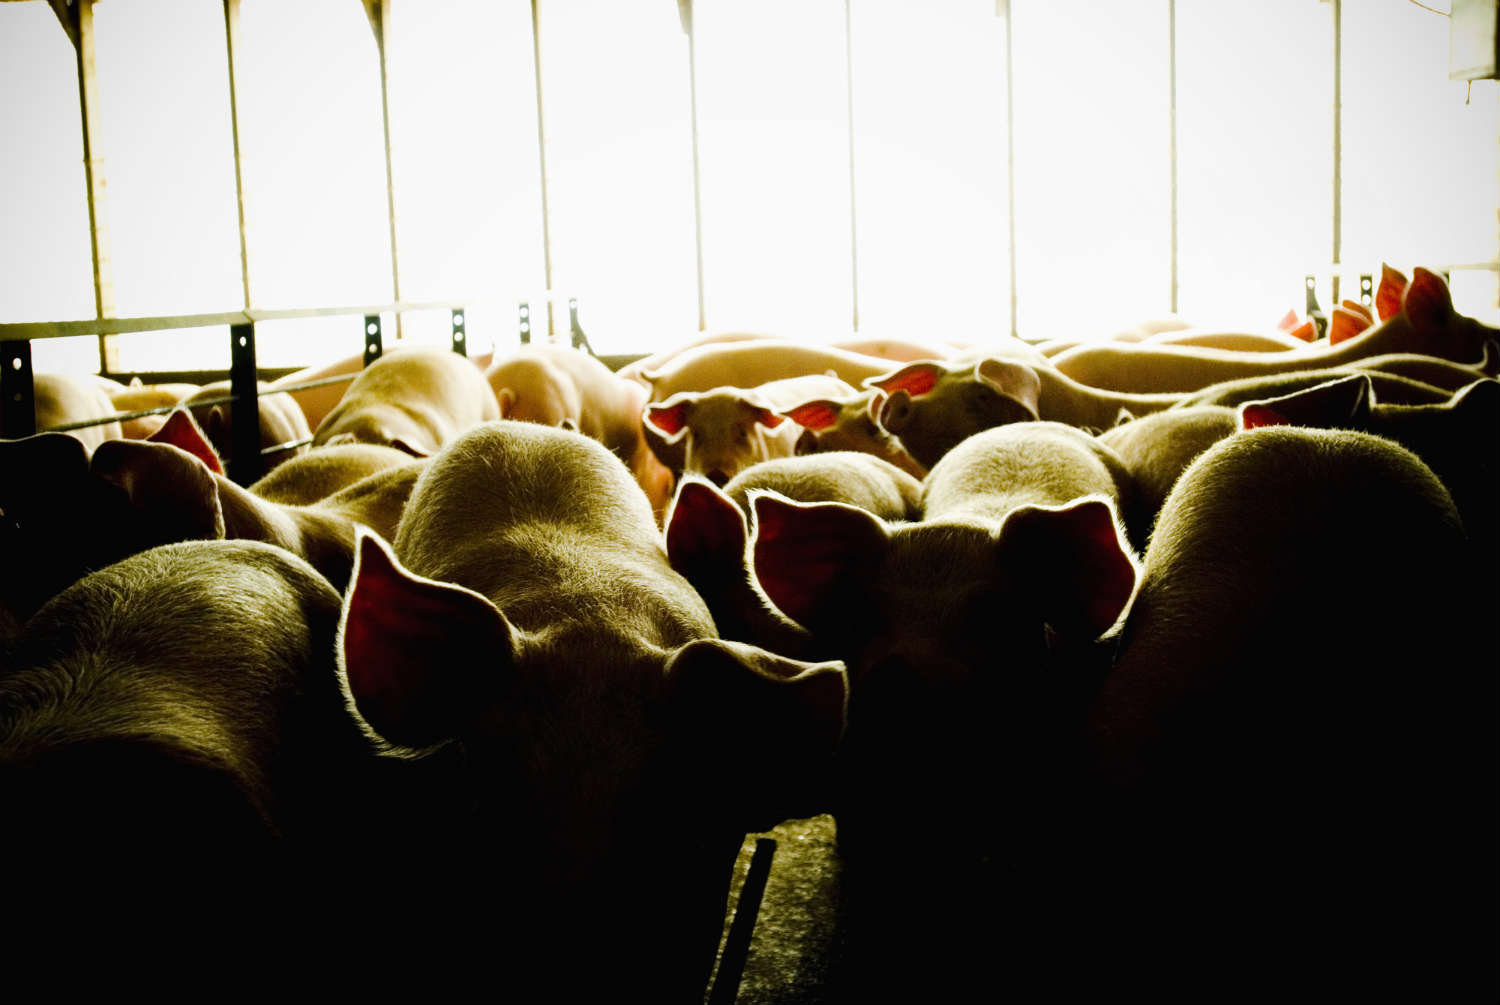 Experts worry that the overuse of antibiotics on livestock is leading to resistant-strains of bacteria